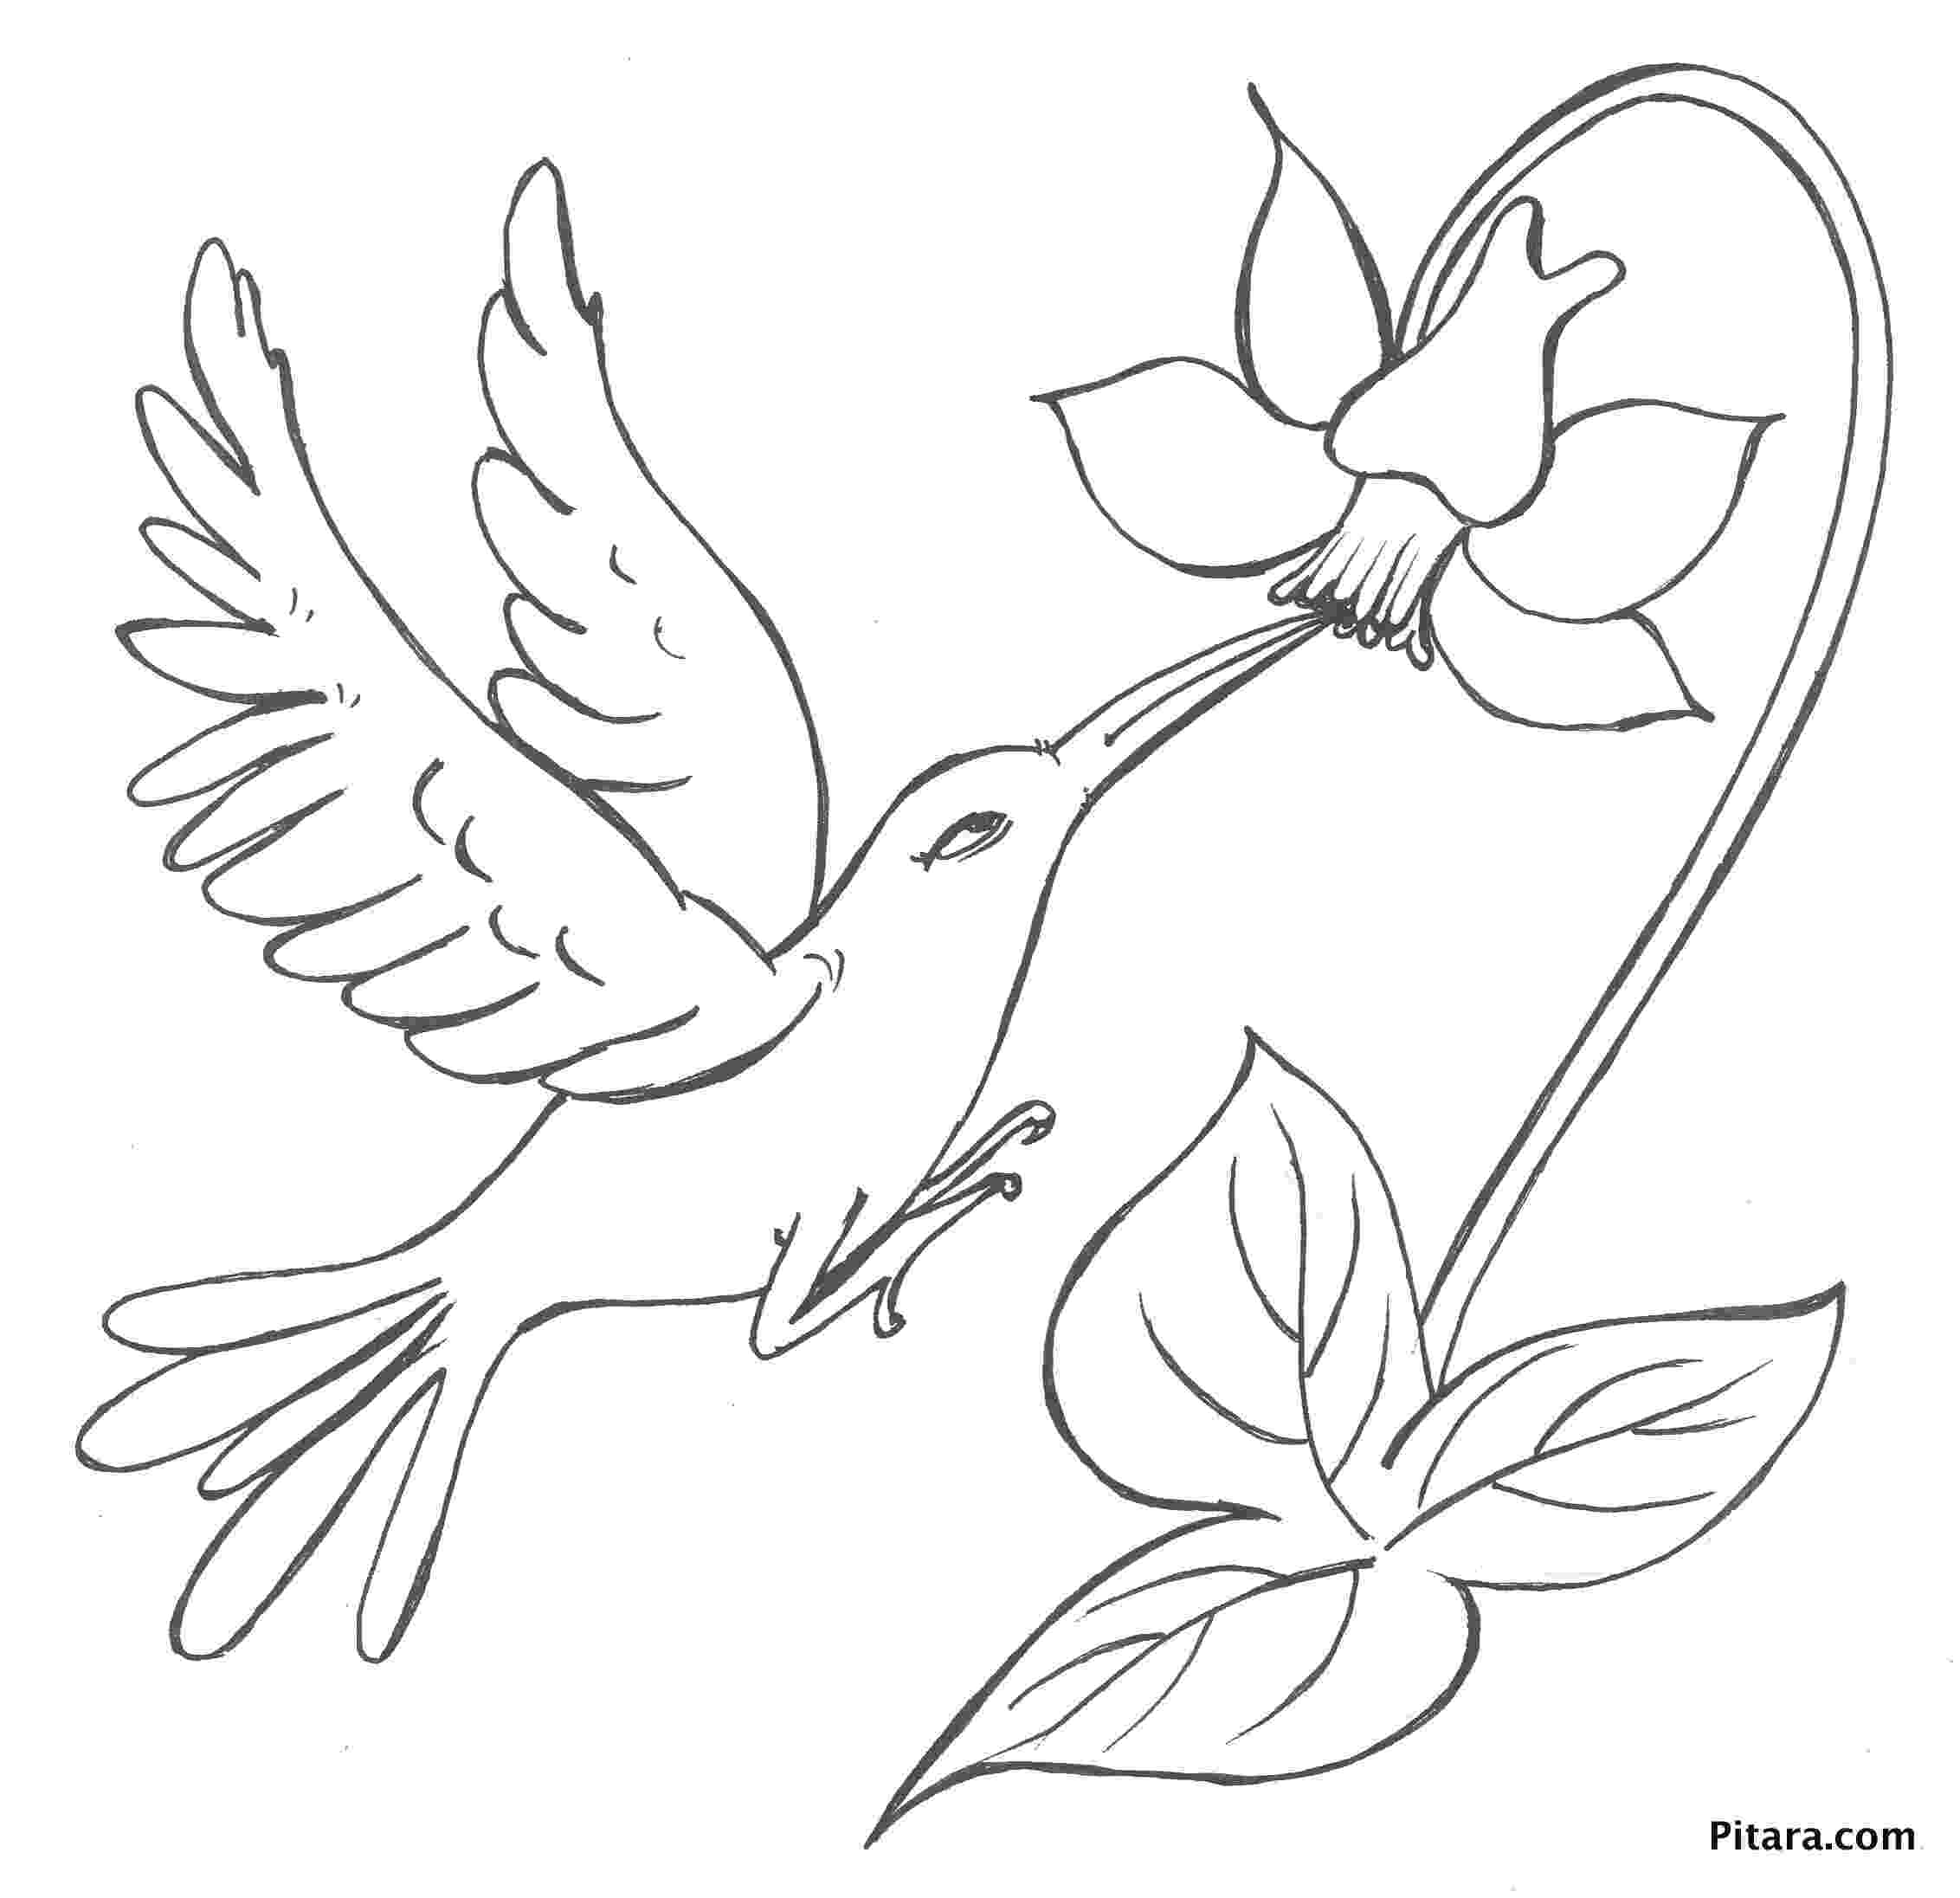 bird coloring images coloring pages birds beautiful bird nest coloring pages bird images coloring